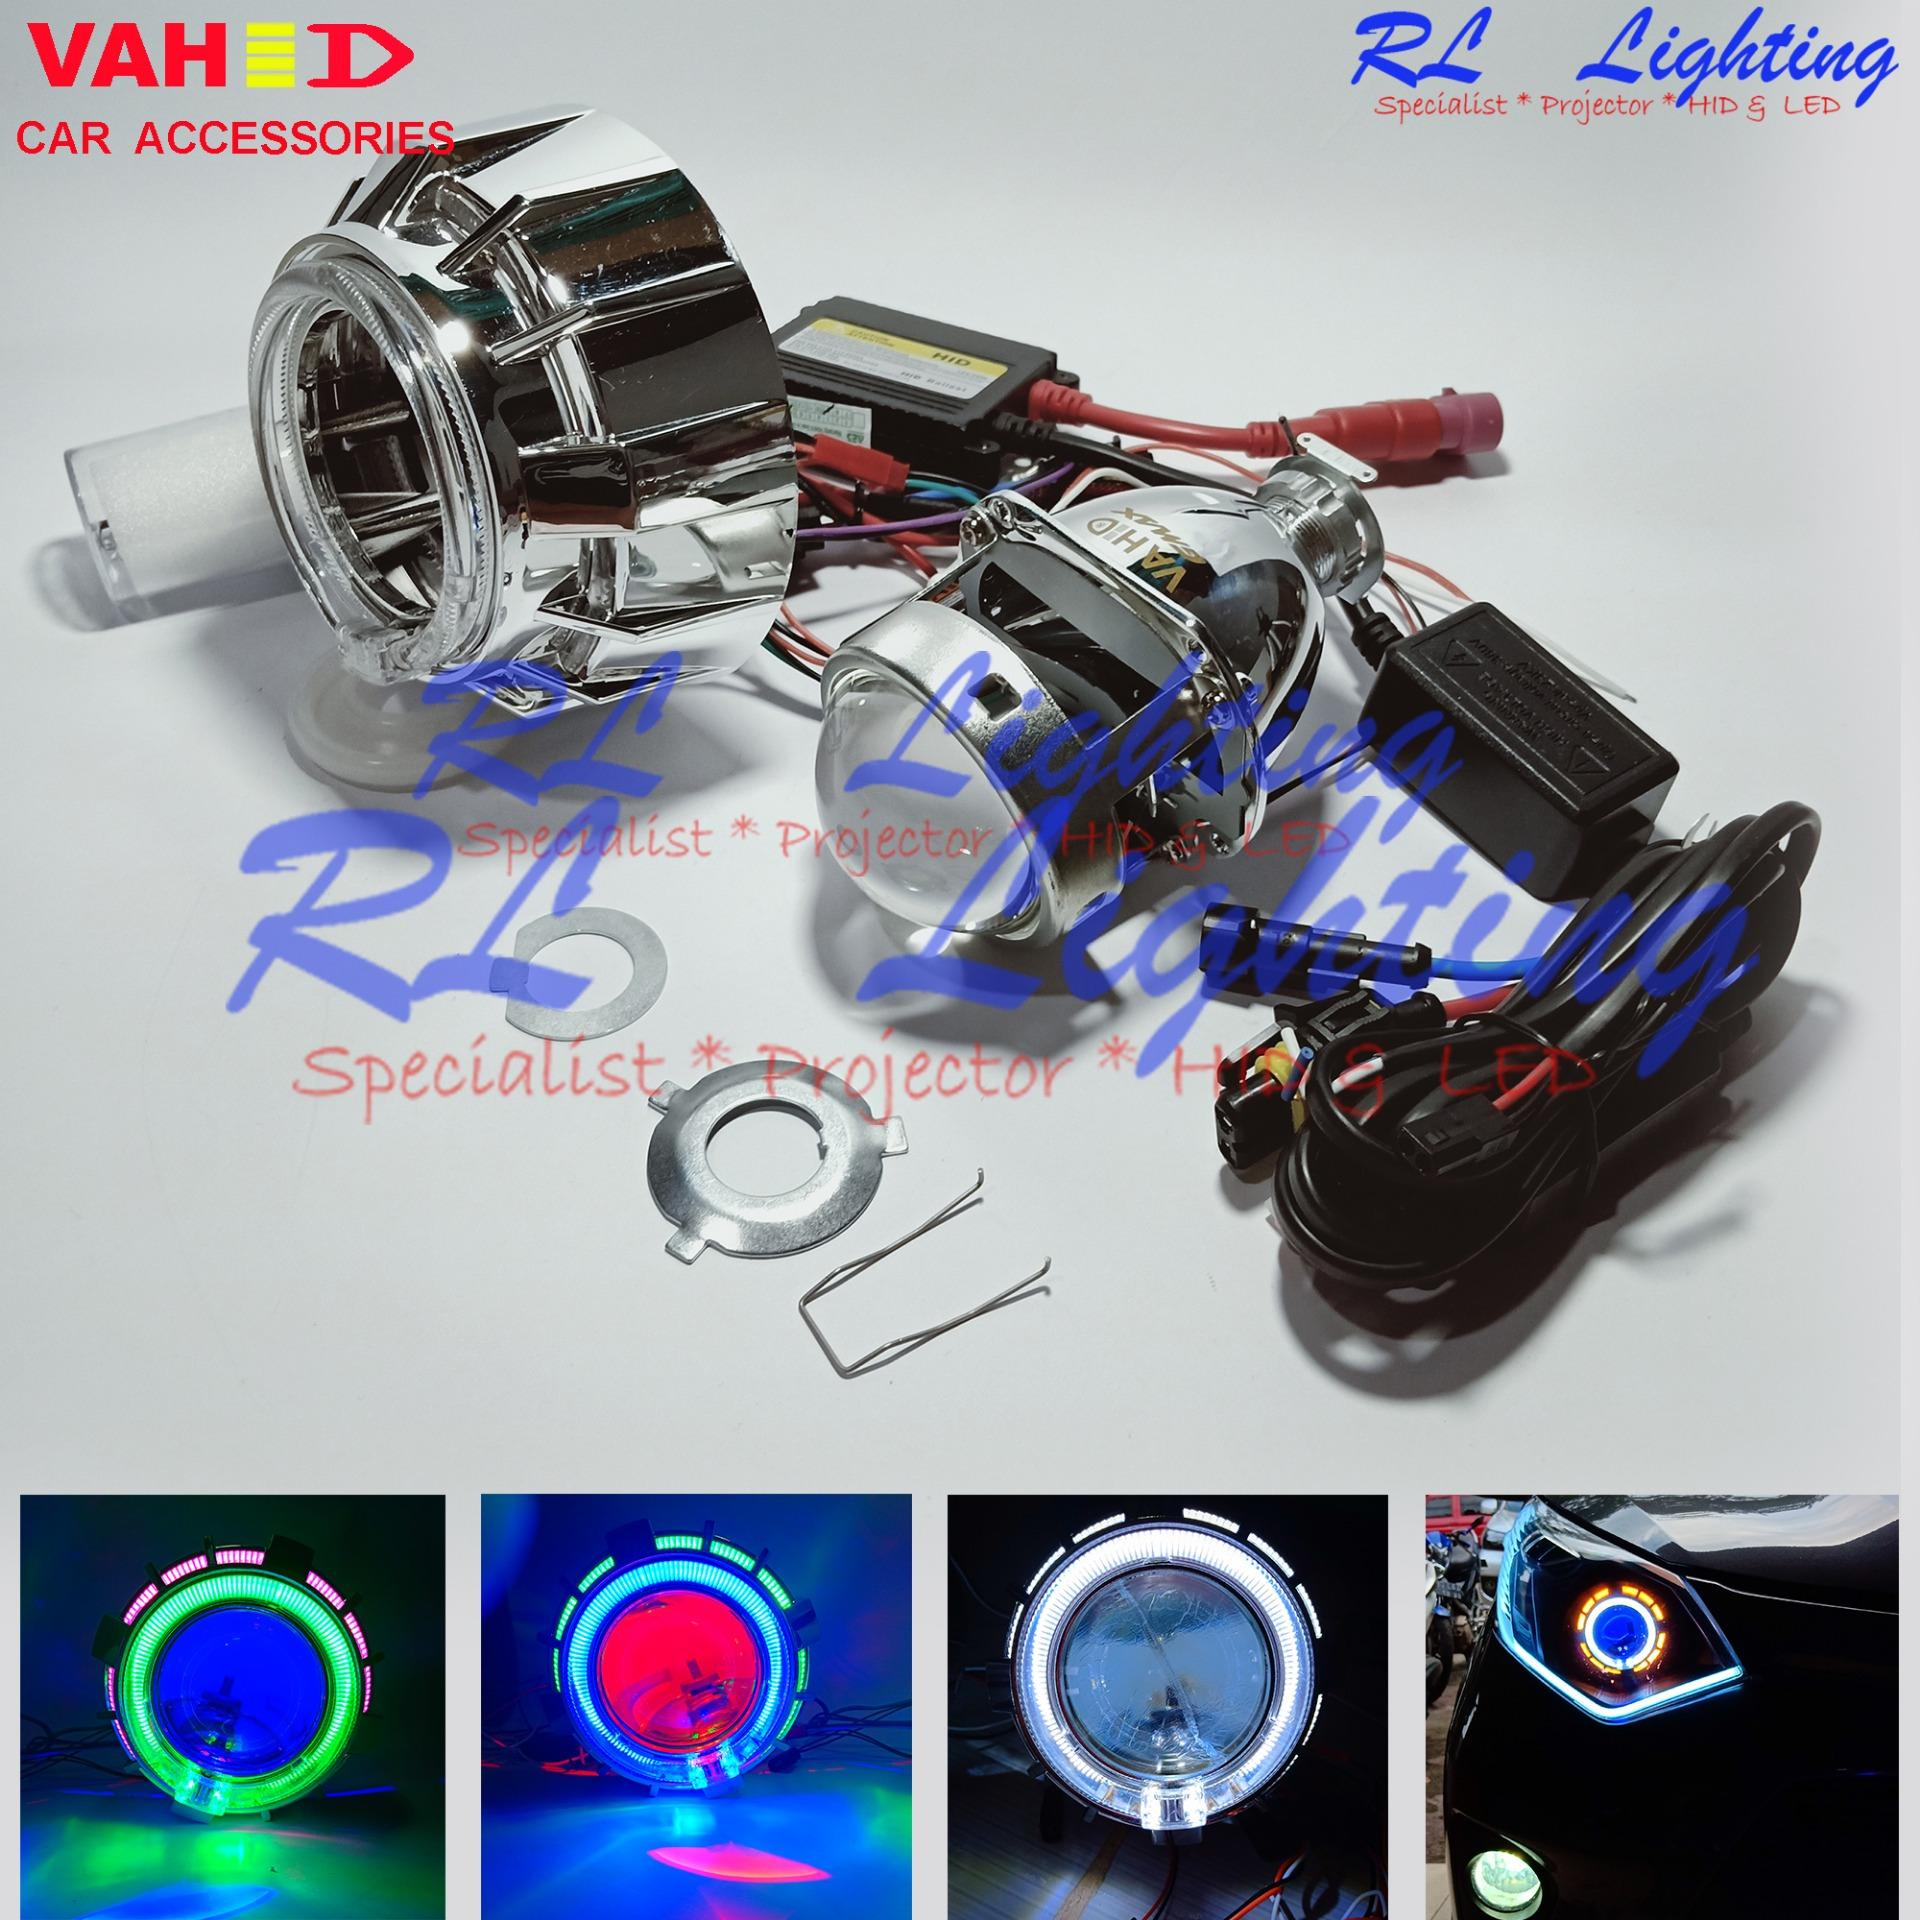 1set Projector HID Motor 35w Vahid AngeL Eyes Crystal Type G1 Lensa GMax Full Metal